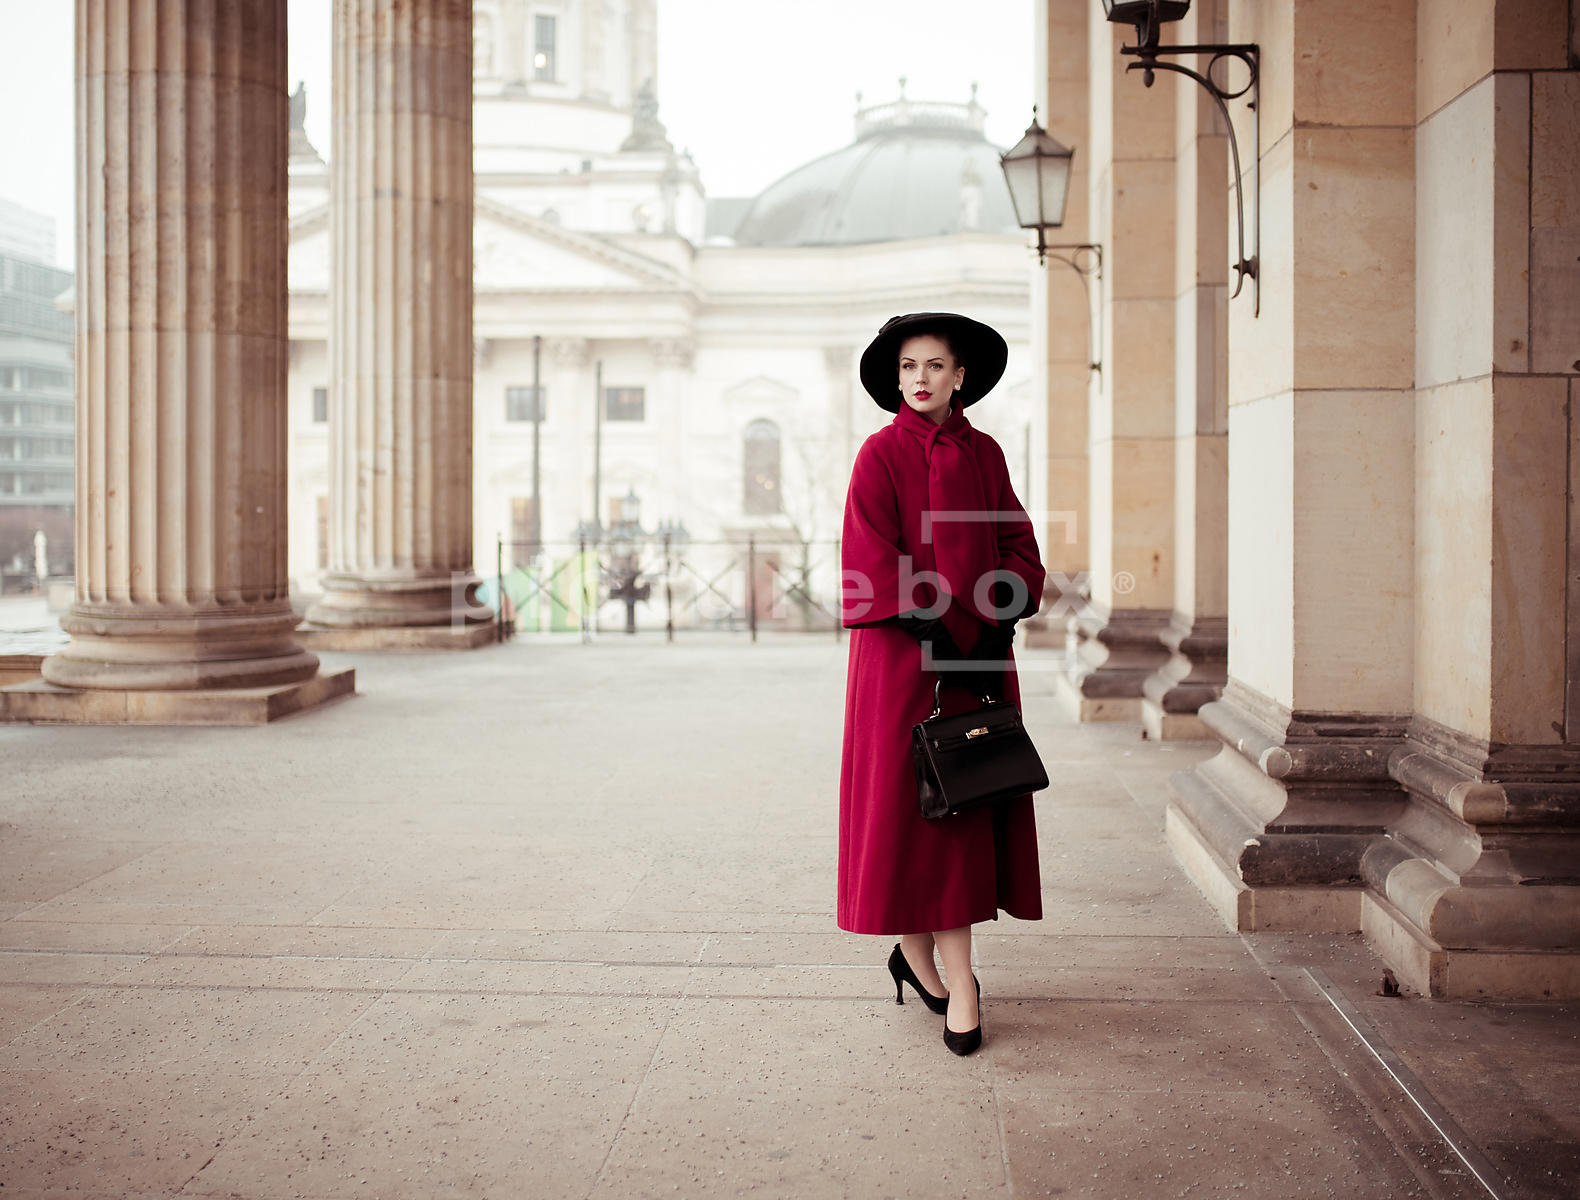 A vintage woman in a red coat.